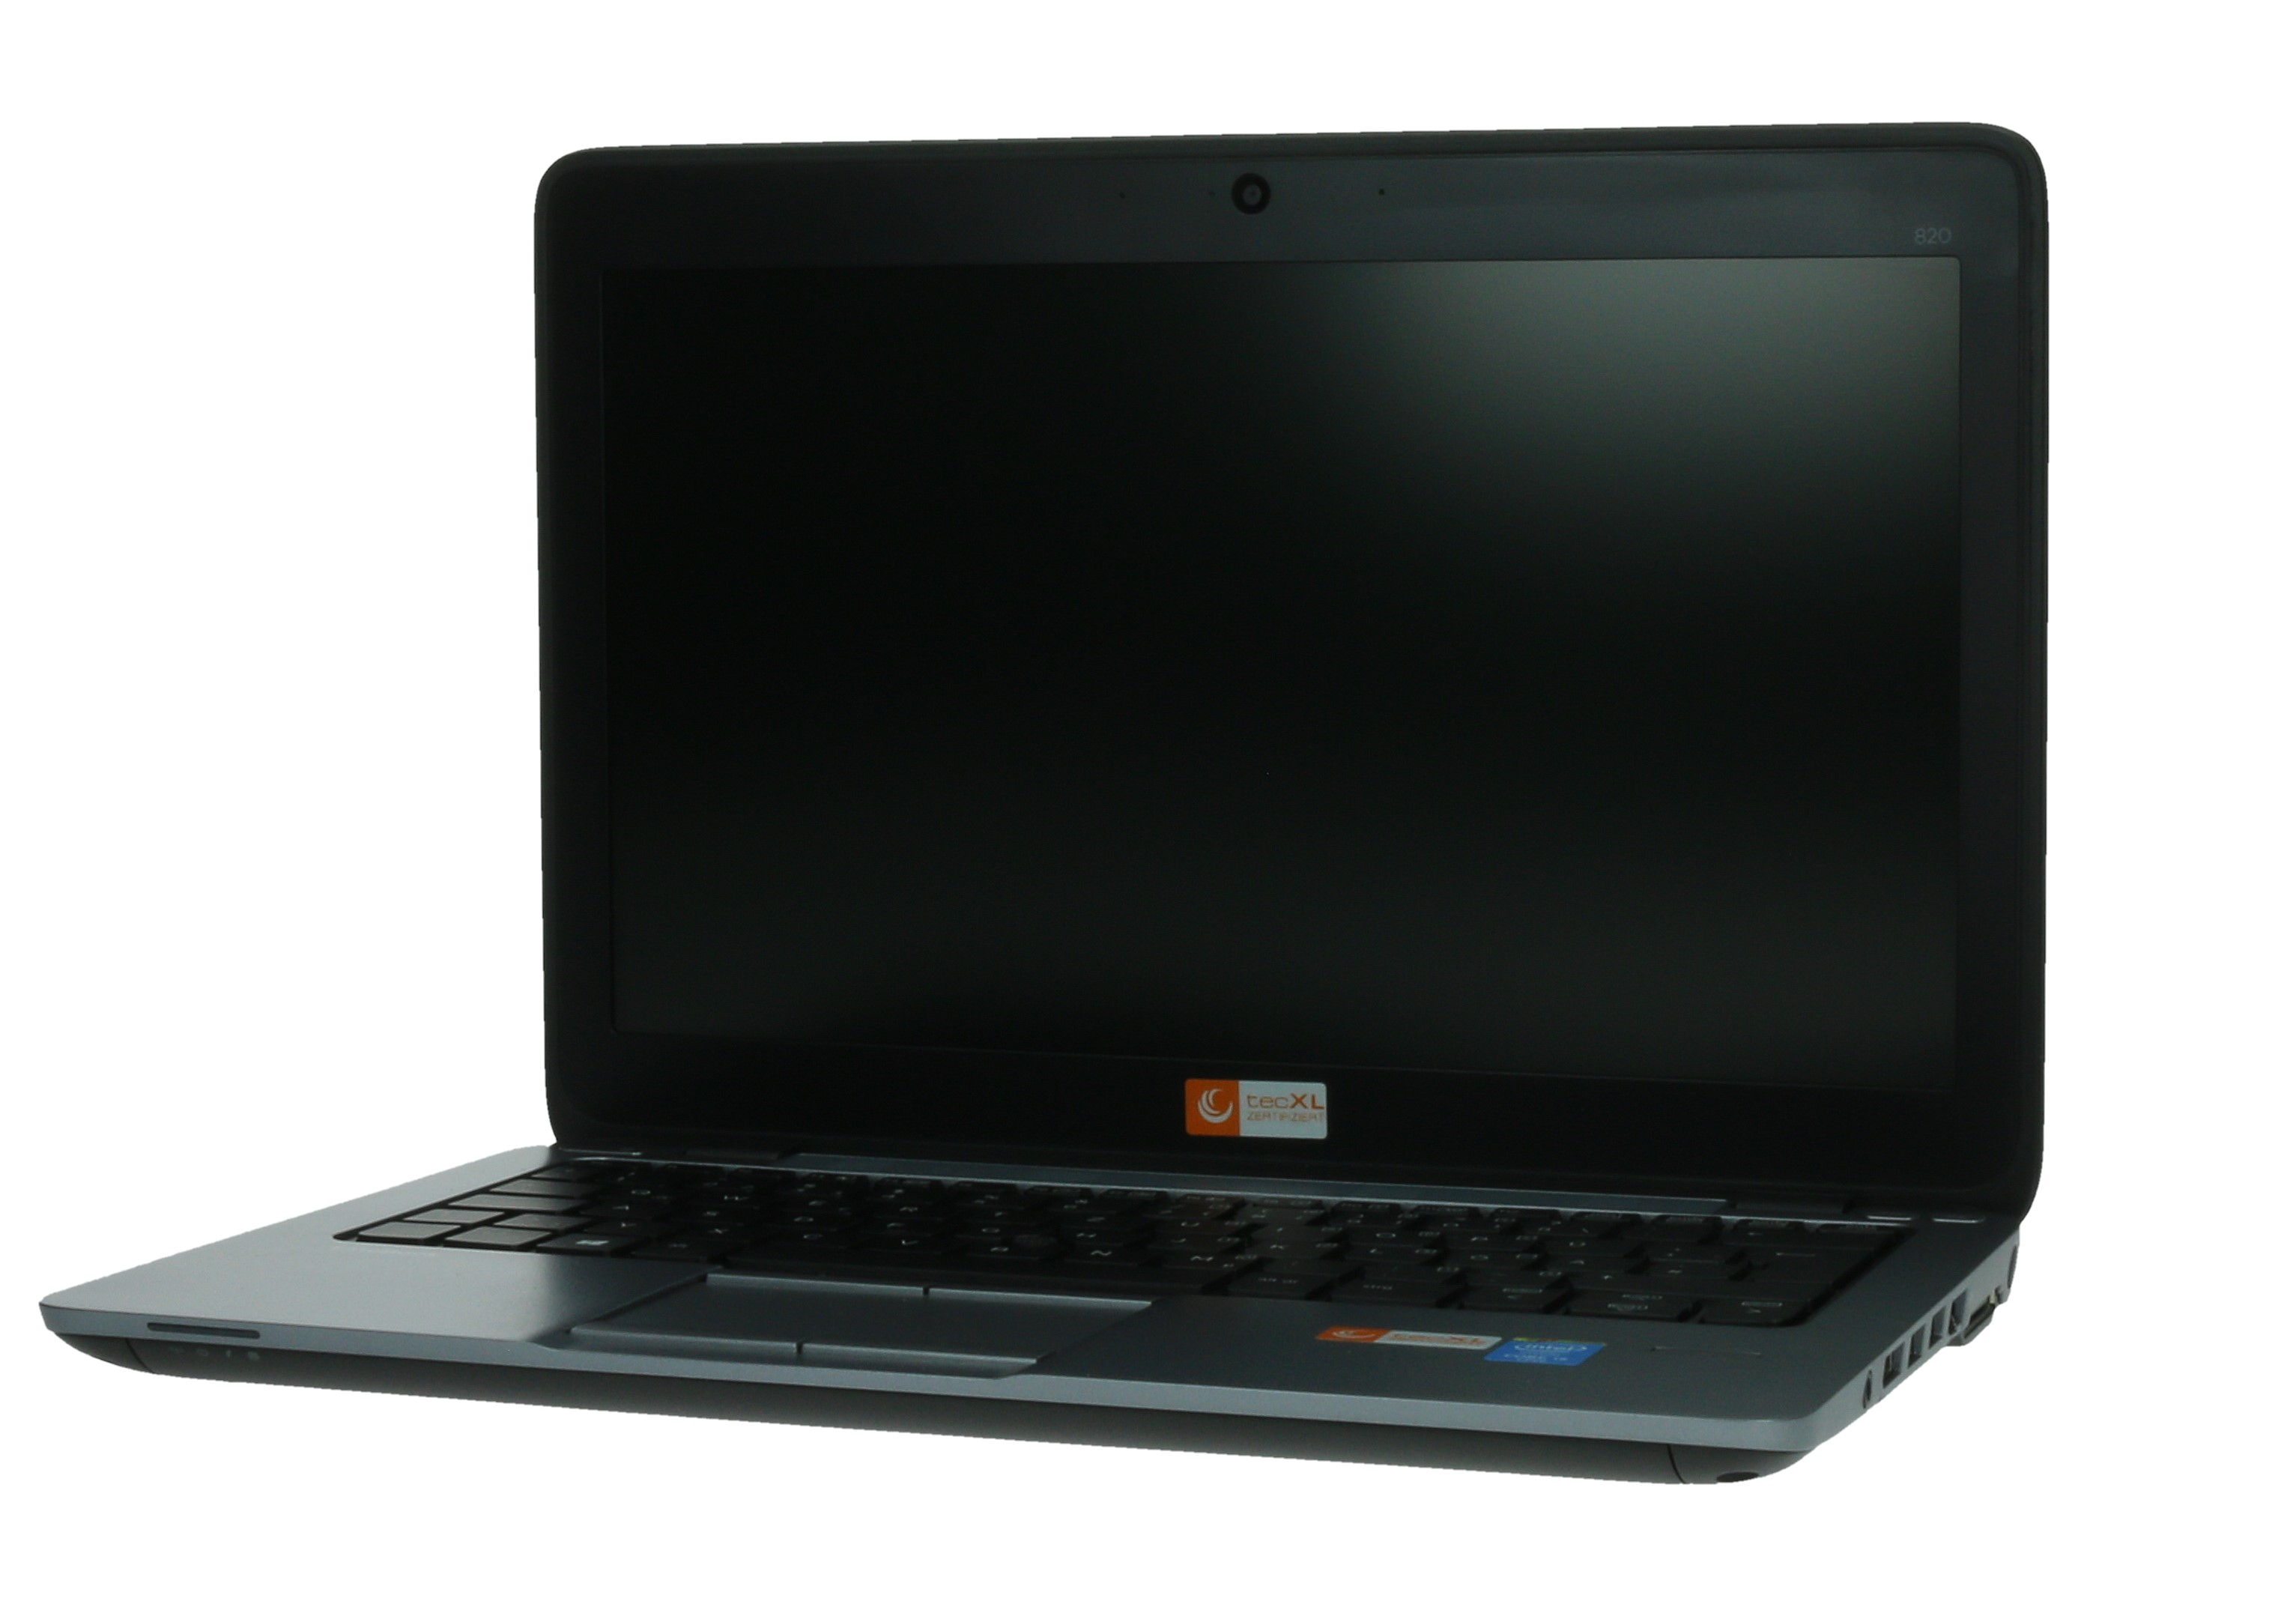 Hewlett Packard EliteBook 820 G1